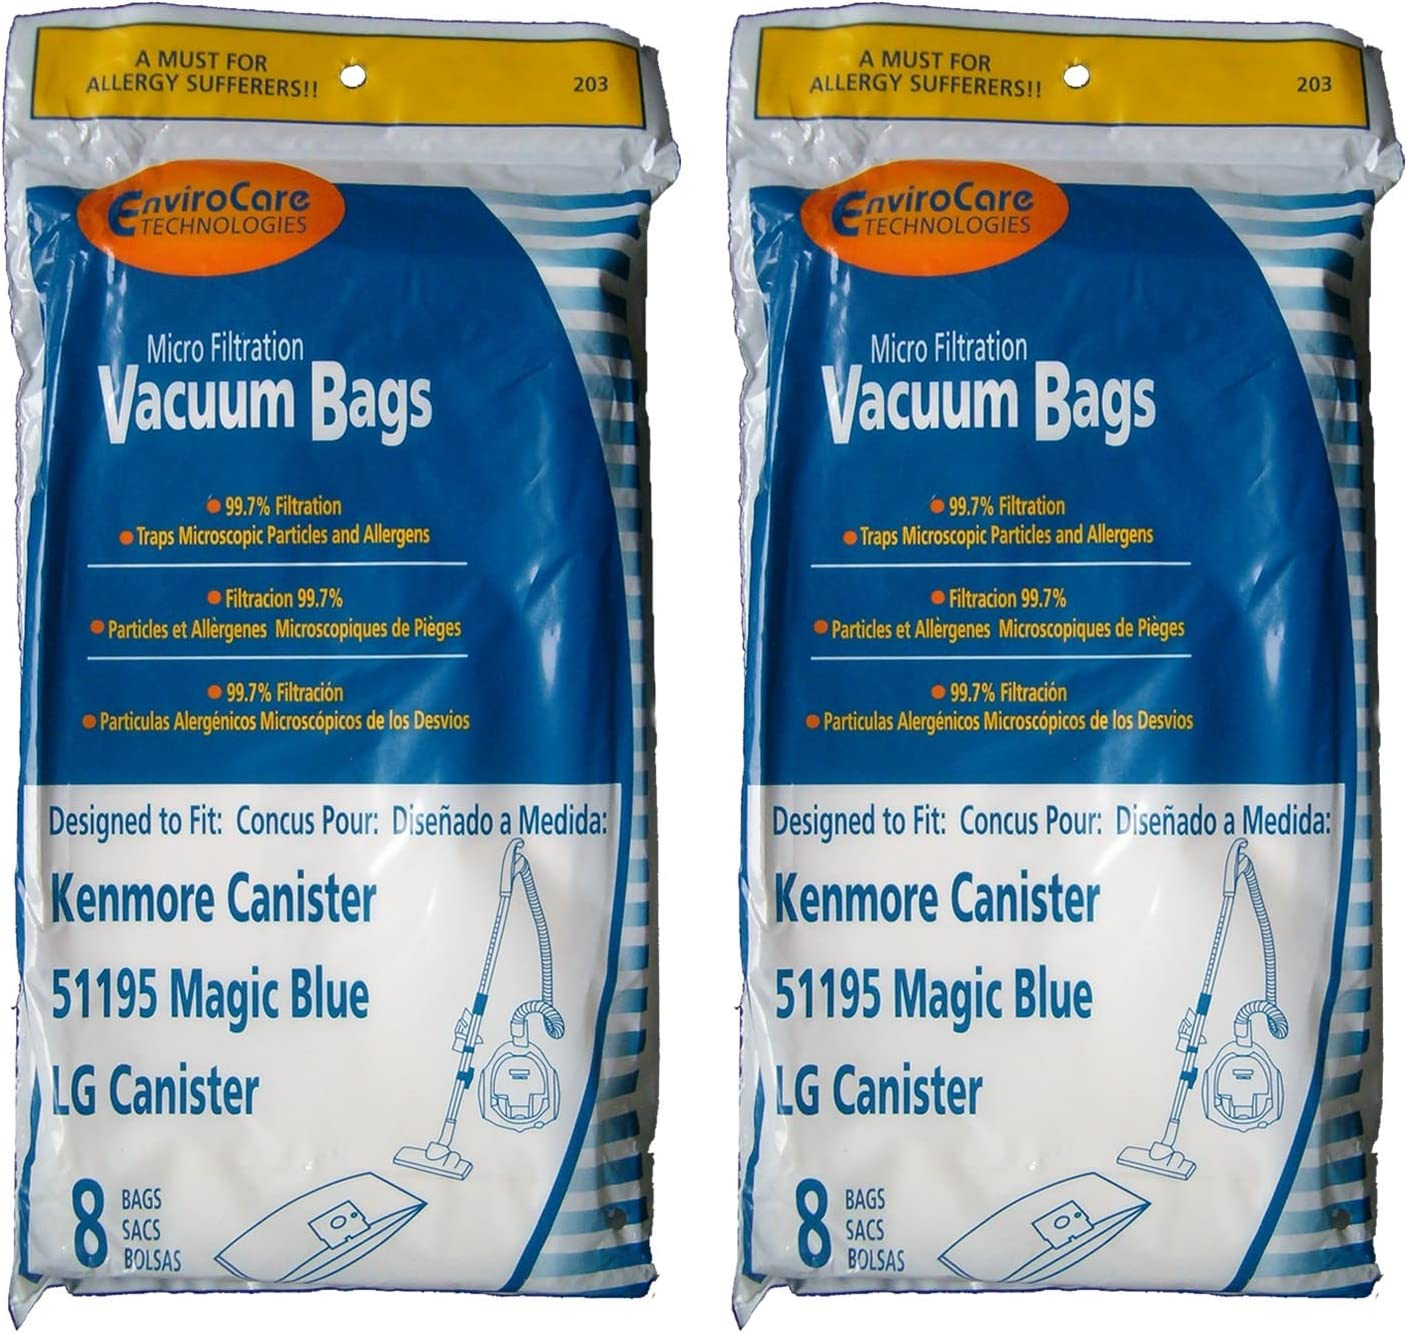 16 Kenmore Type M Sears 51195 Magic Blue LG Vacuum Bags, Ultracare, Canister Vacuum Cleaners, 20-51195, 609323, 21195, 21295, 24195, 21495